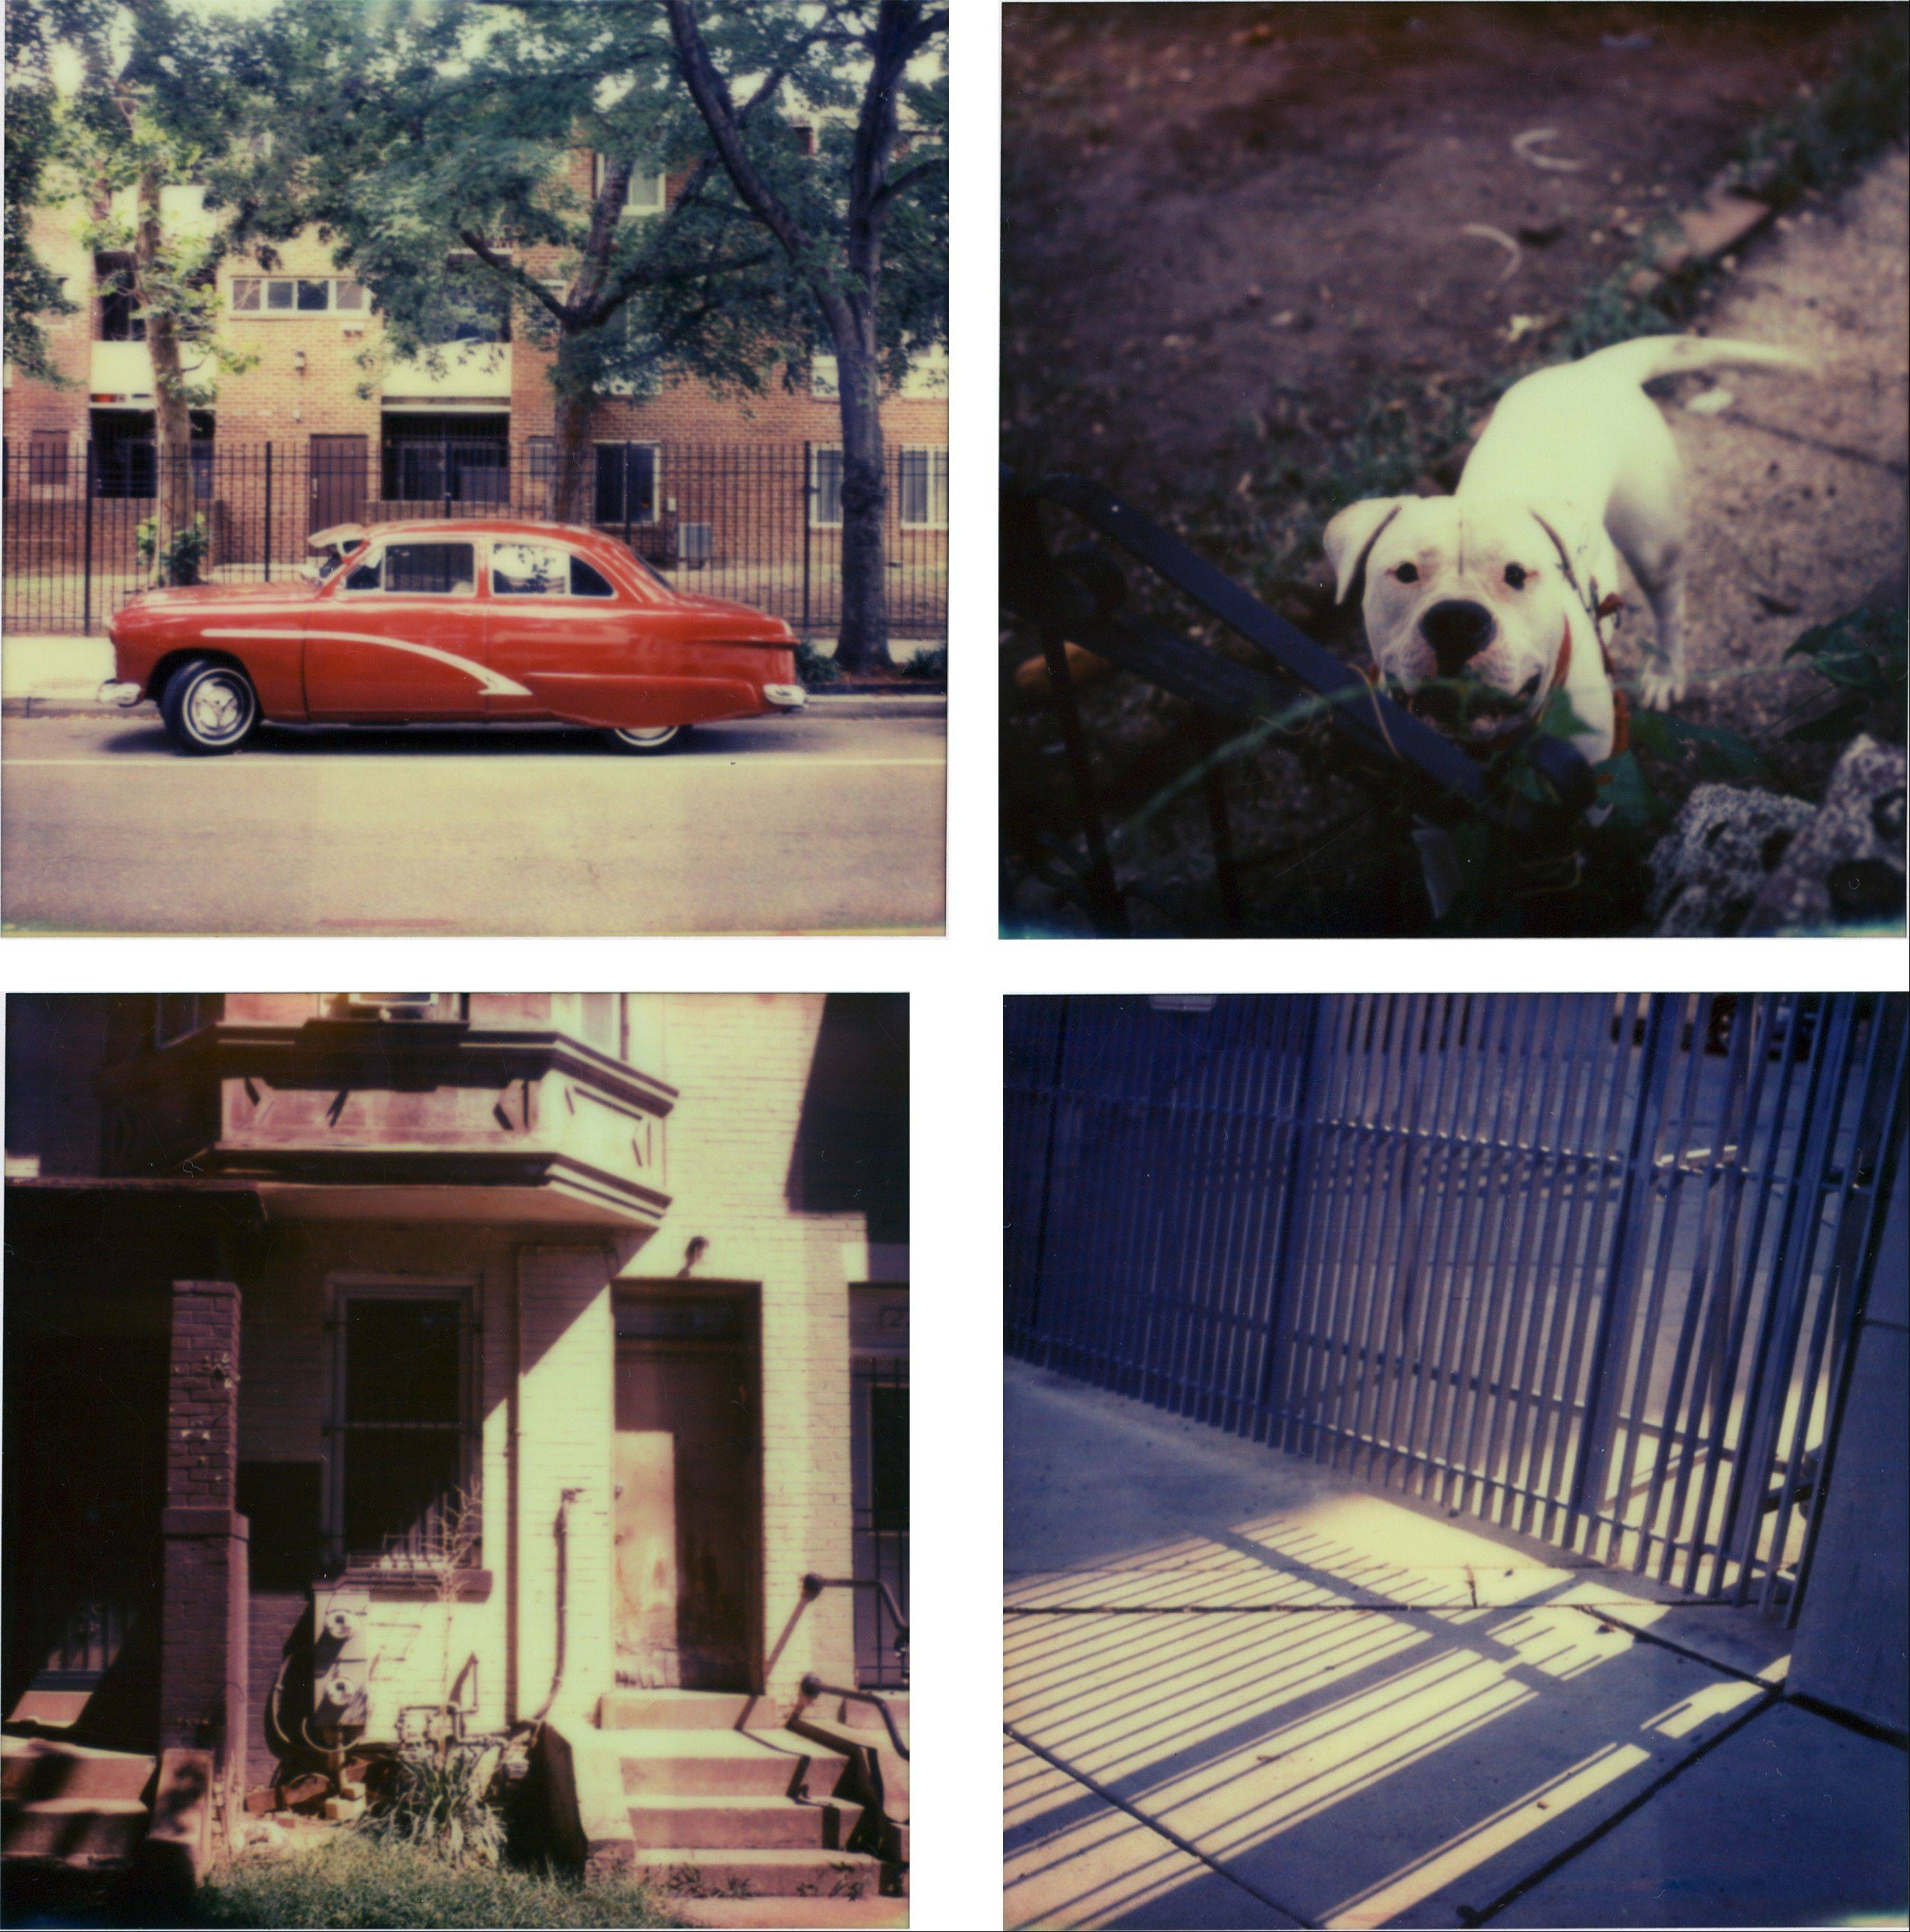 Top left, a vintage car; top right, a local dog greets the photographer; bottom left, a residence in morning light; and bottom right, a gate at the Bureau of Alcohol, Tobacco, Firearms and Explosives. All photos were taken in Washington with a Polaroid SX-70 camera using the Impossible Project�s PX 70 Color Protection film.